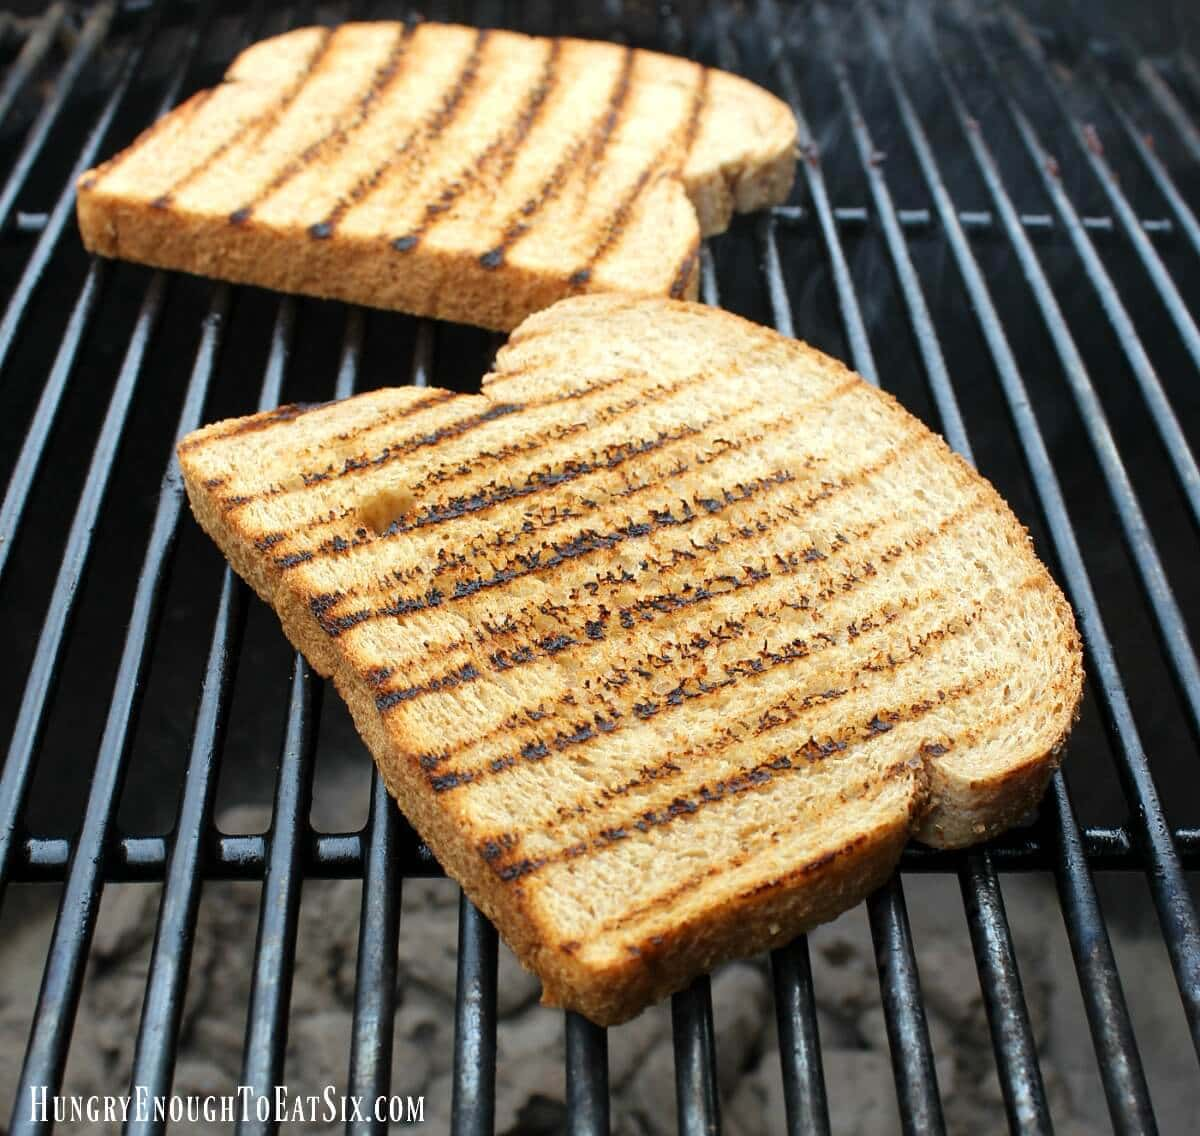 Image of bread getting toasty on the grill